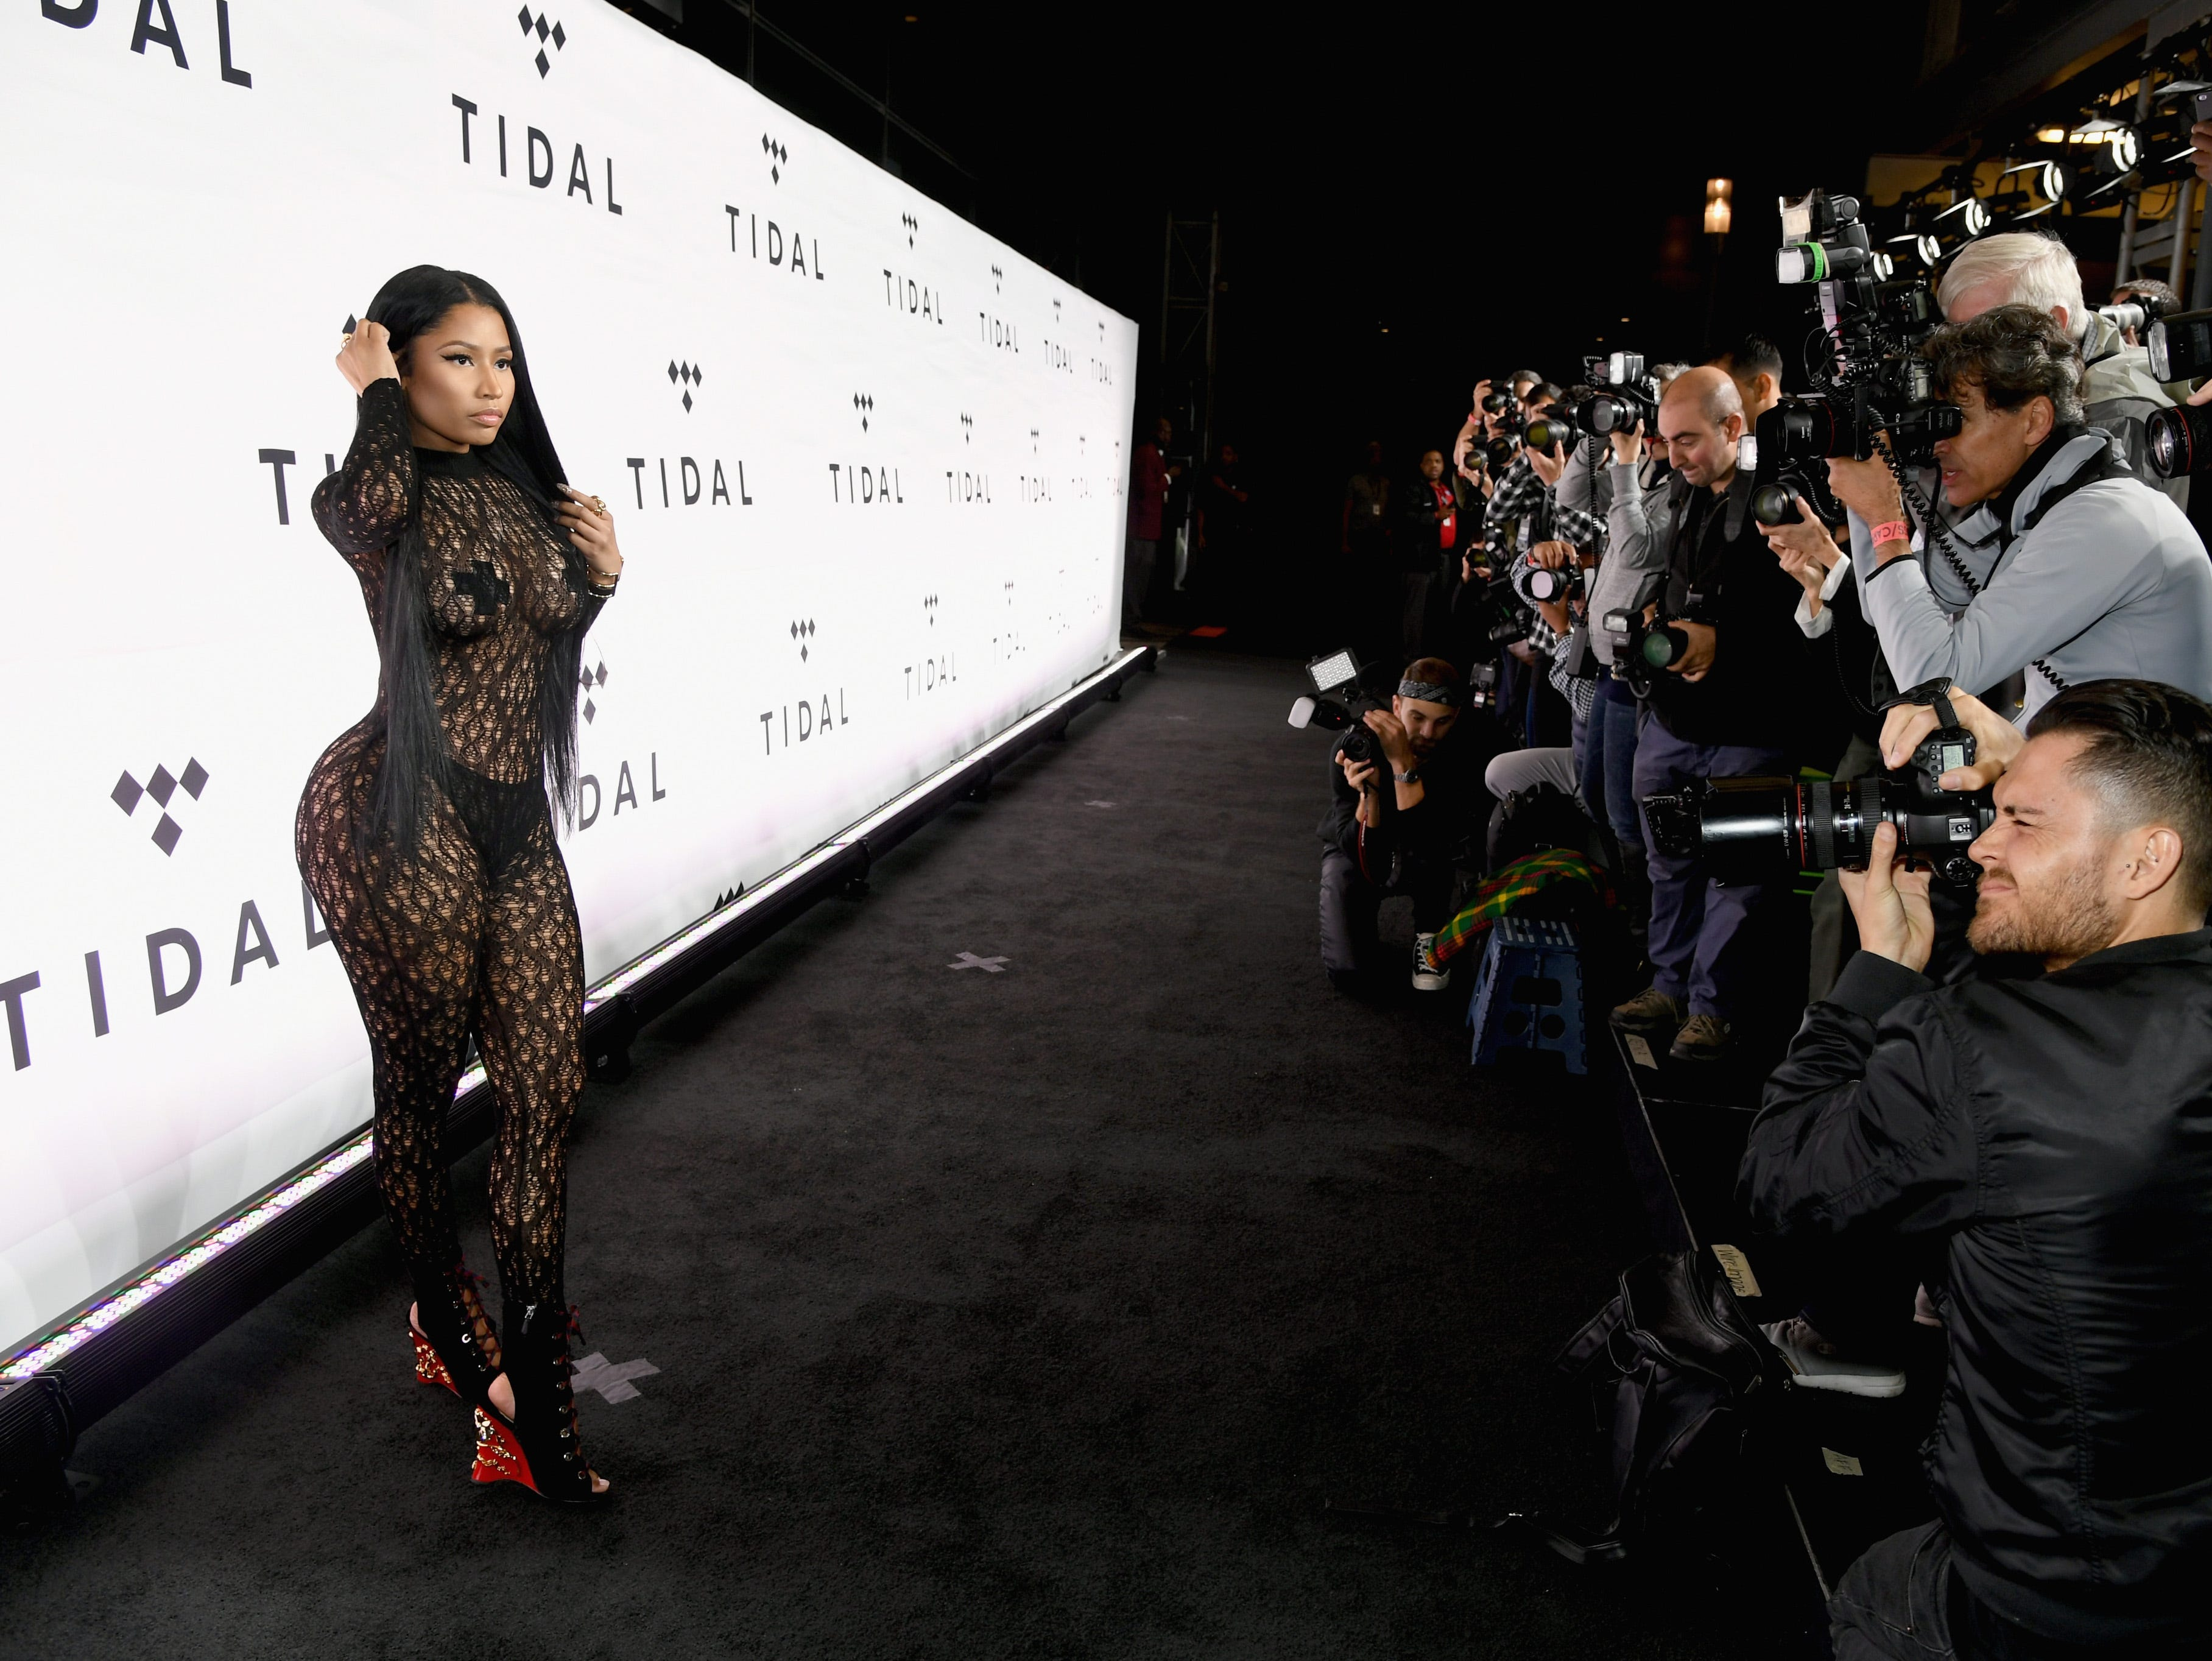 NEW YORK, NY - OCTOBER 15:  Rapper Nicki Minaj attends TIDAL X: 1015 on October 15, 2016 in New York City.  (Photo by Larry Busacca/Getty Images for TIDAL) ORG XMIT: 676014043 ORIG FILE ID: 614910640